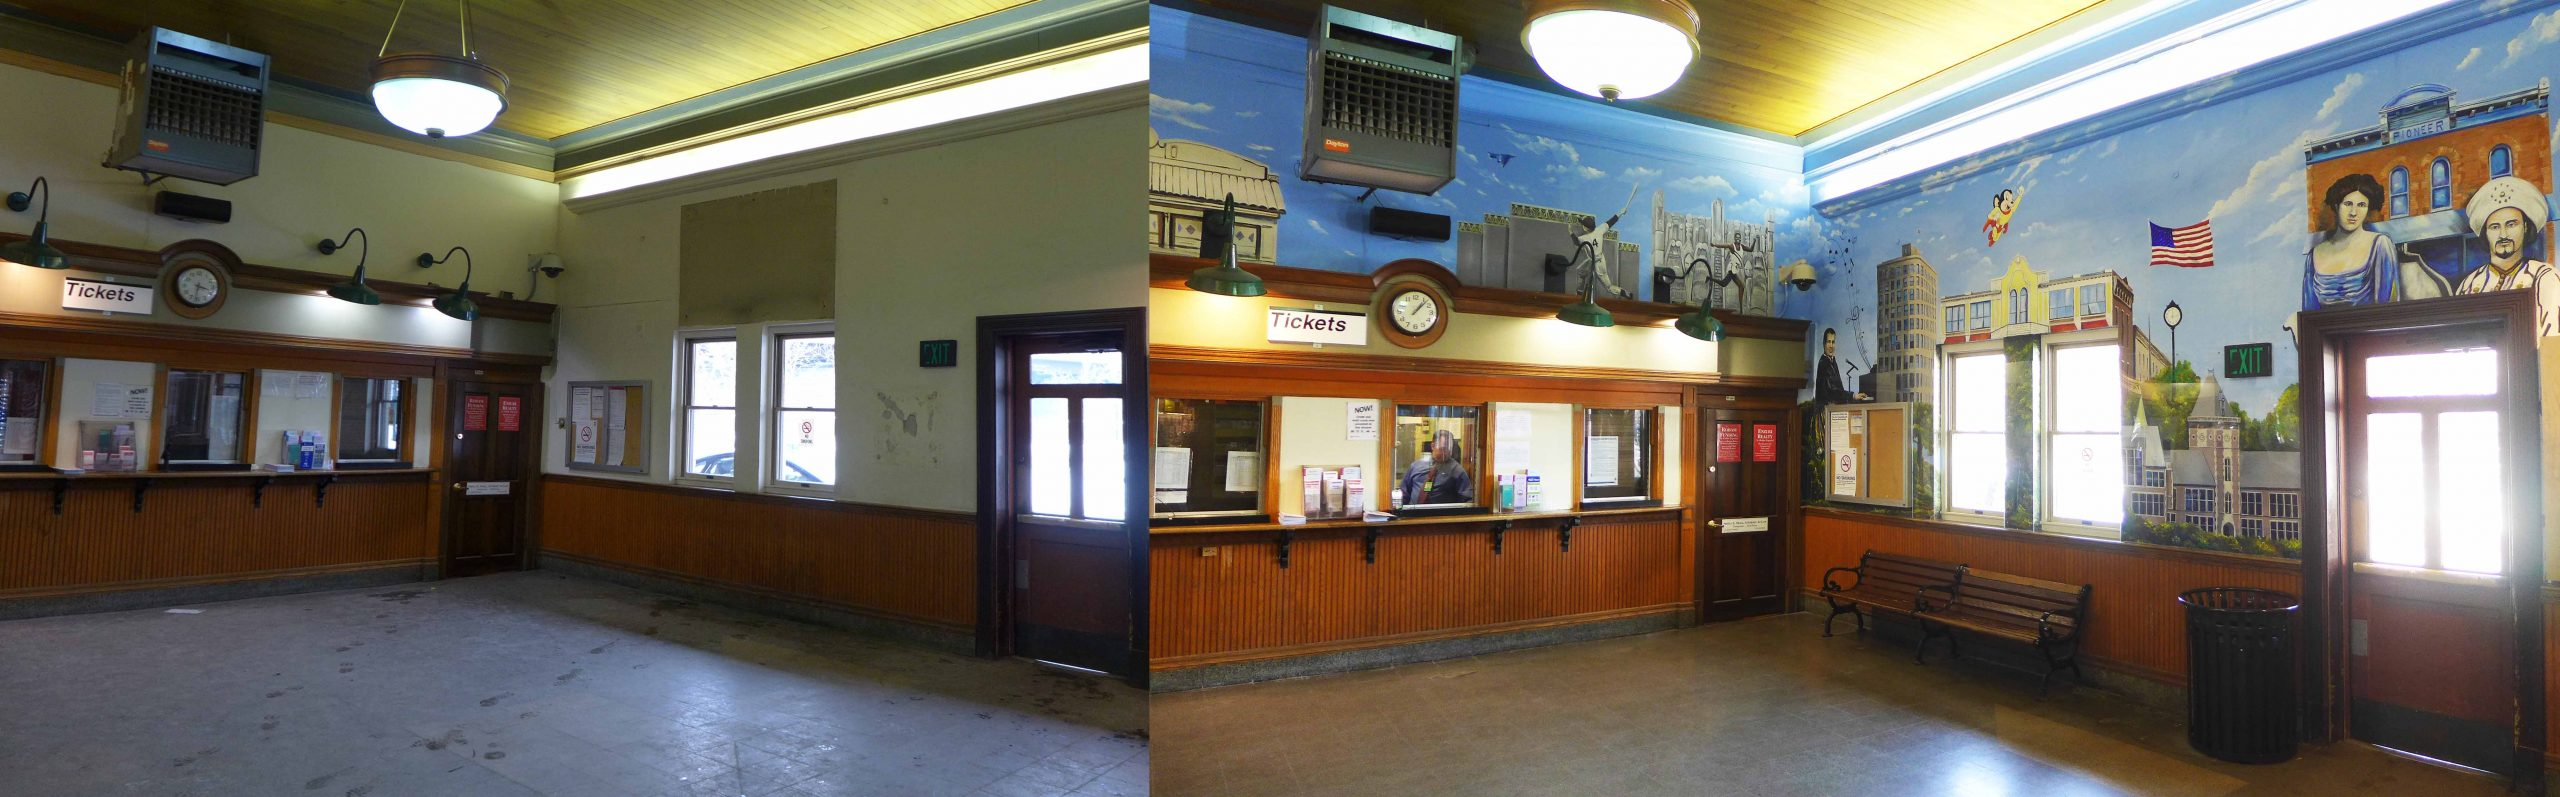 Story of New Rochelle Murals